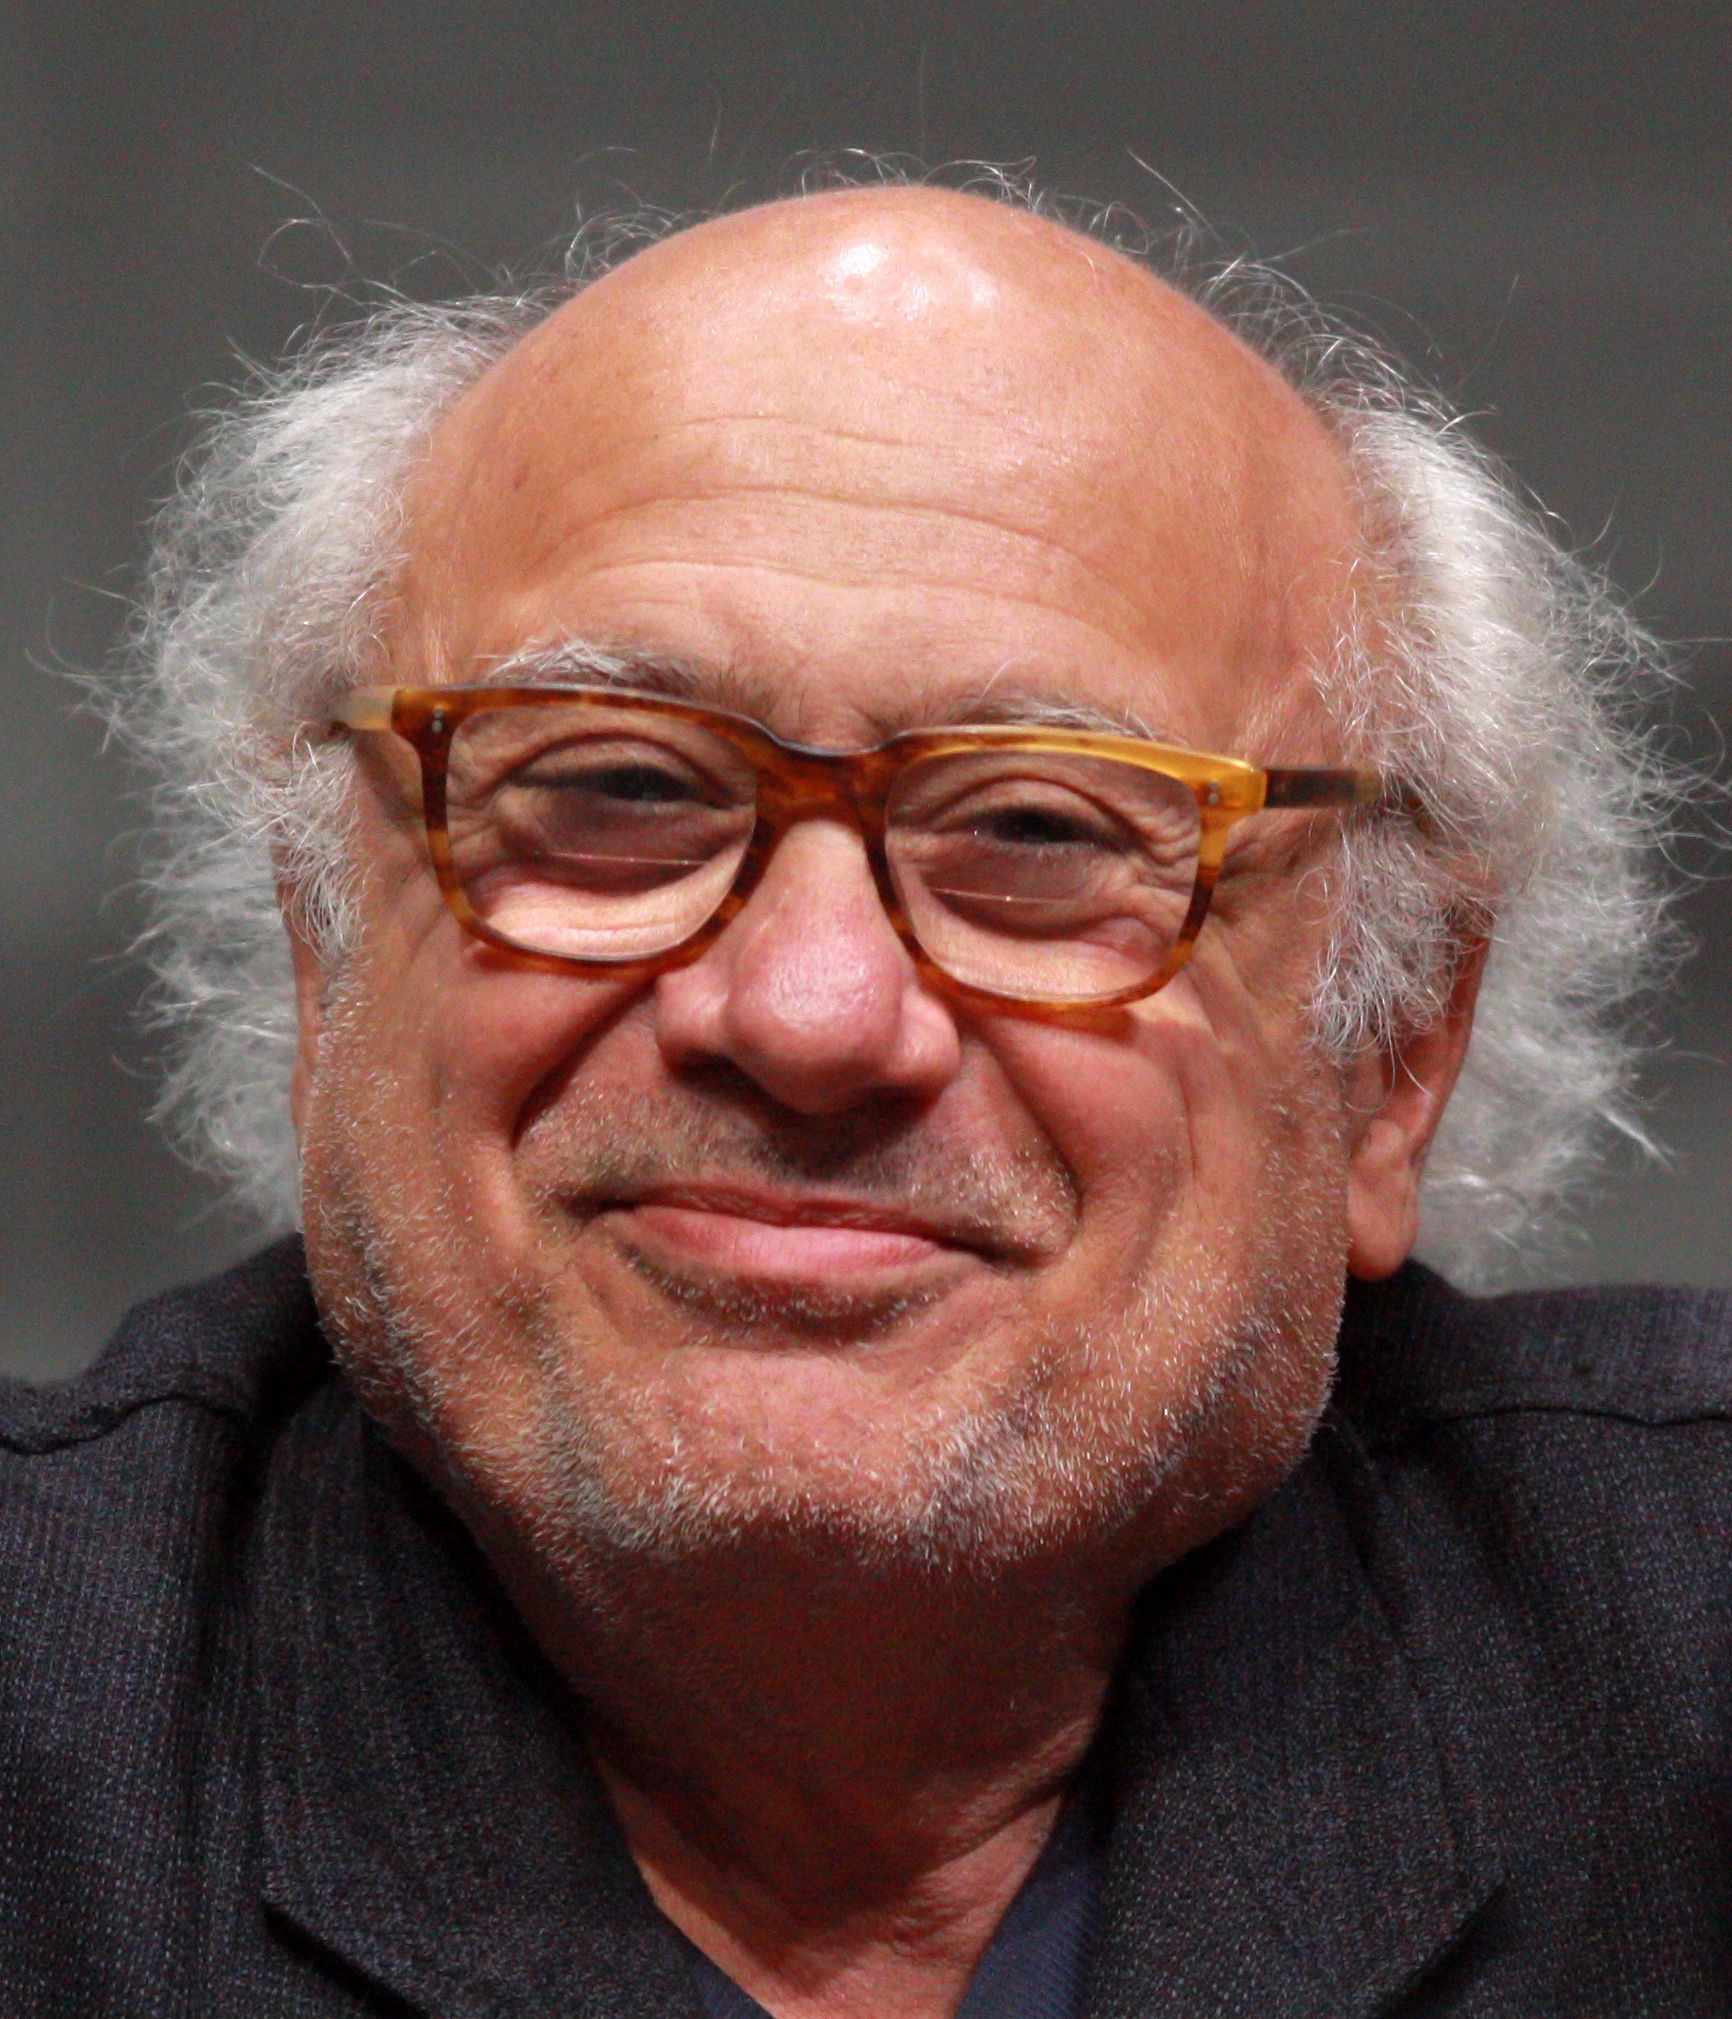 Photo of Danny DeVito: American actor, comedian, director and producer